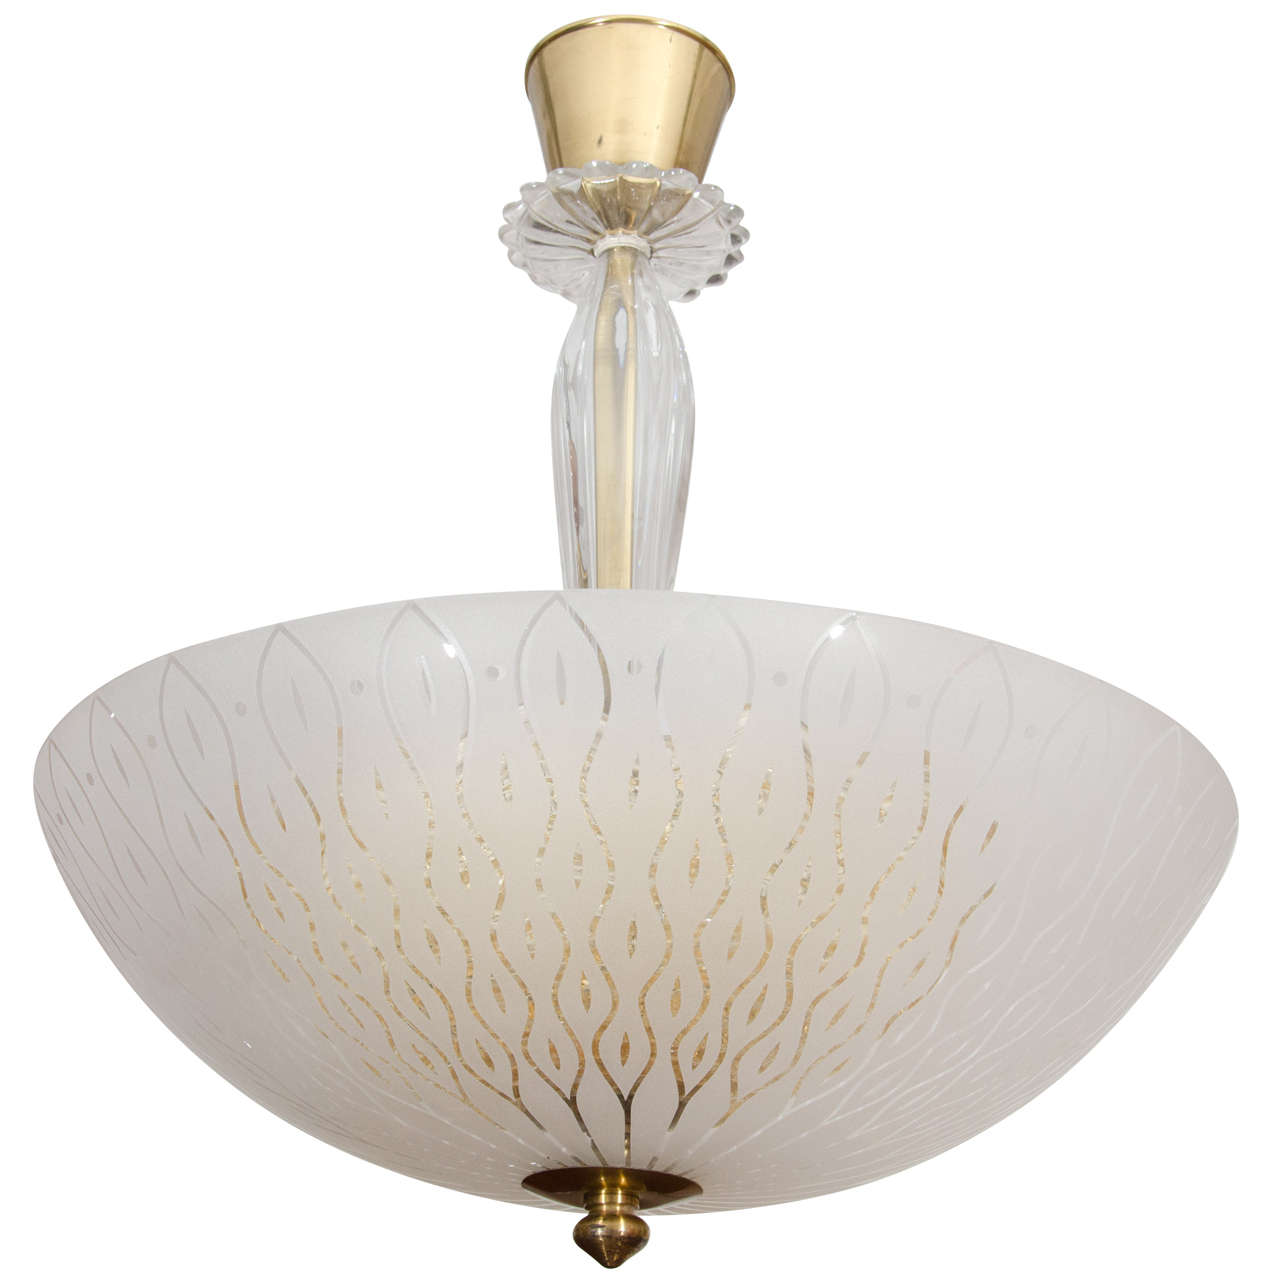 Orrefors Art Glass Light Fixture with Internal Golden Diffuser For ...